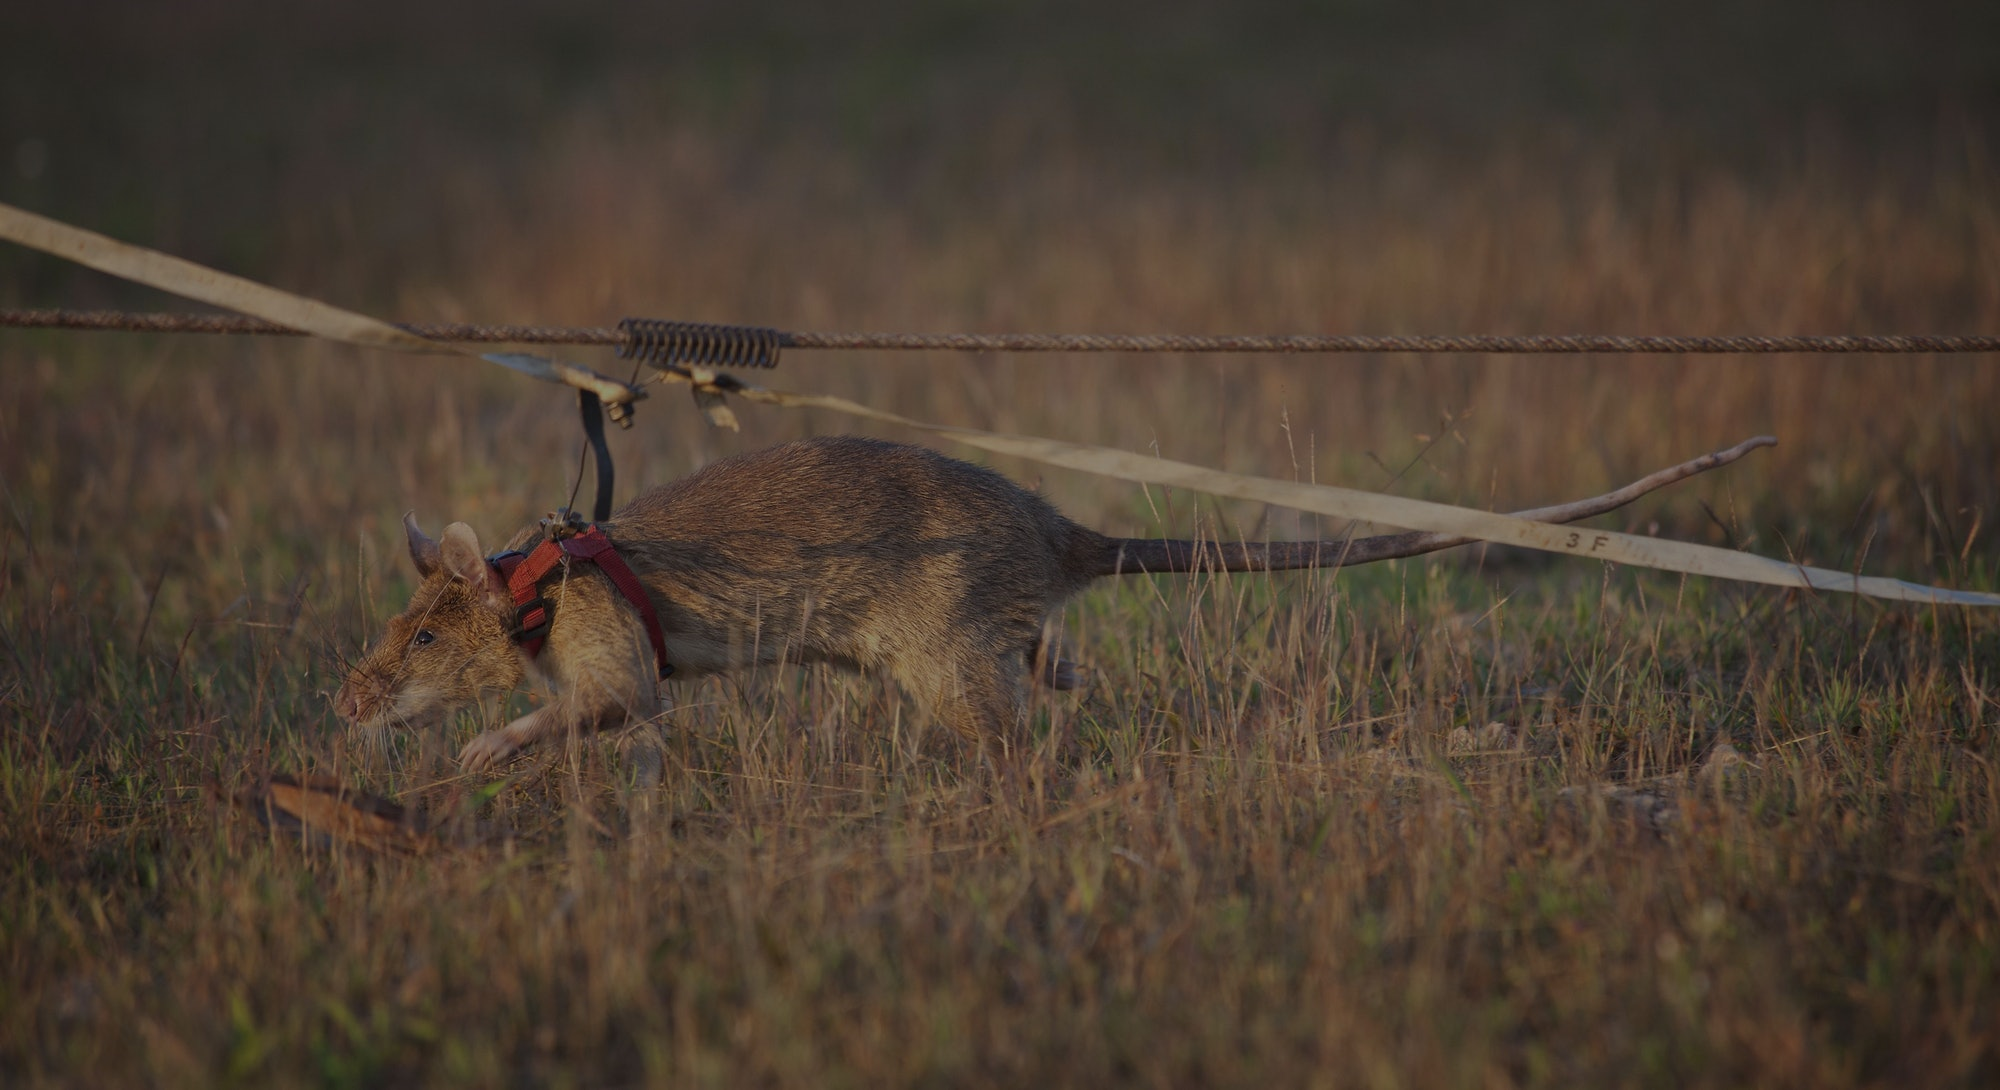 Magawa, a large rat with light brown fur, wears a harness as he sniffs his way through a field of dr...